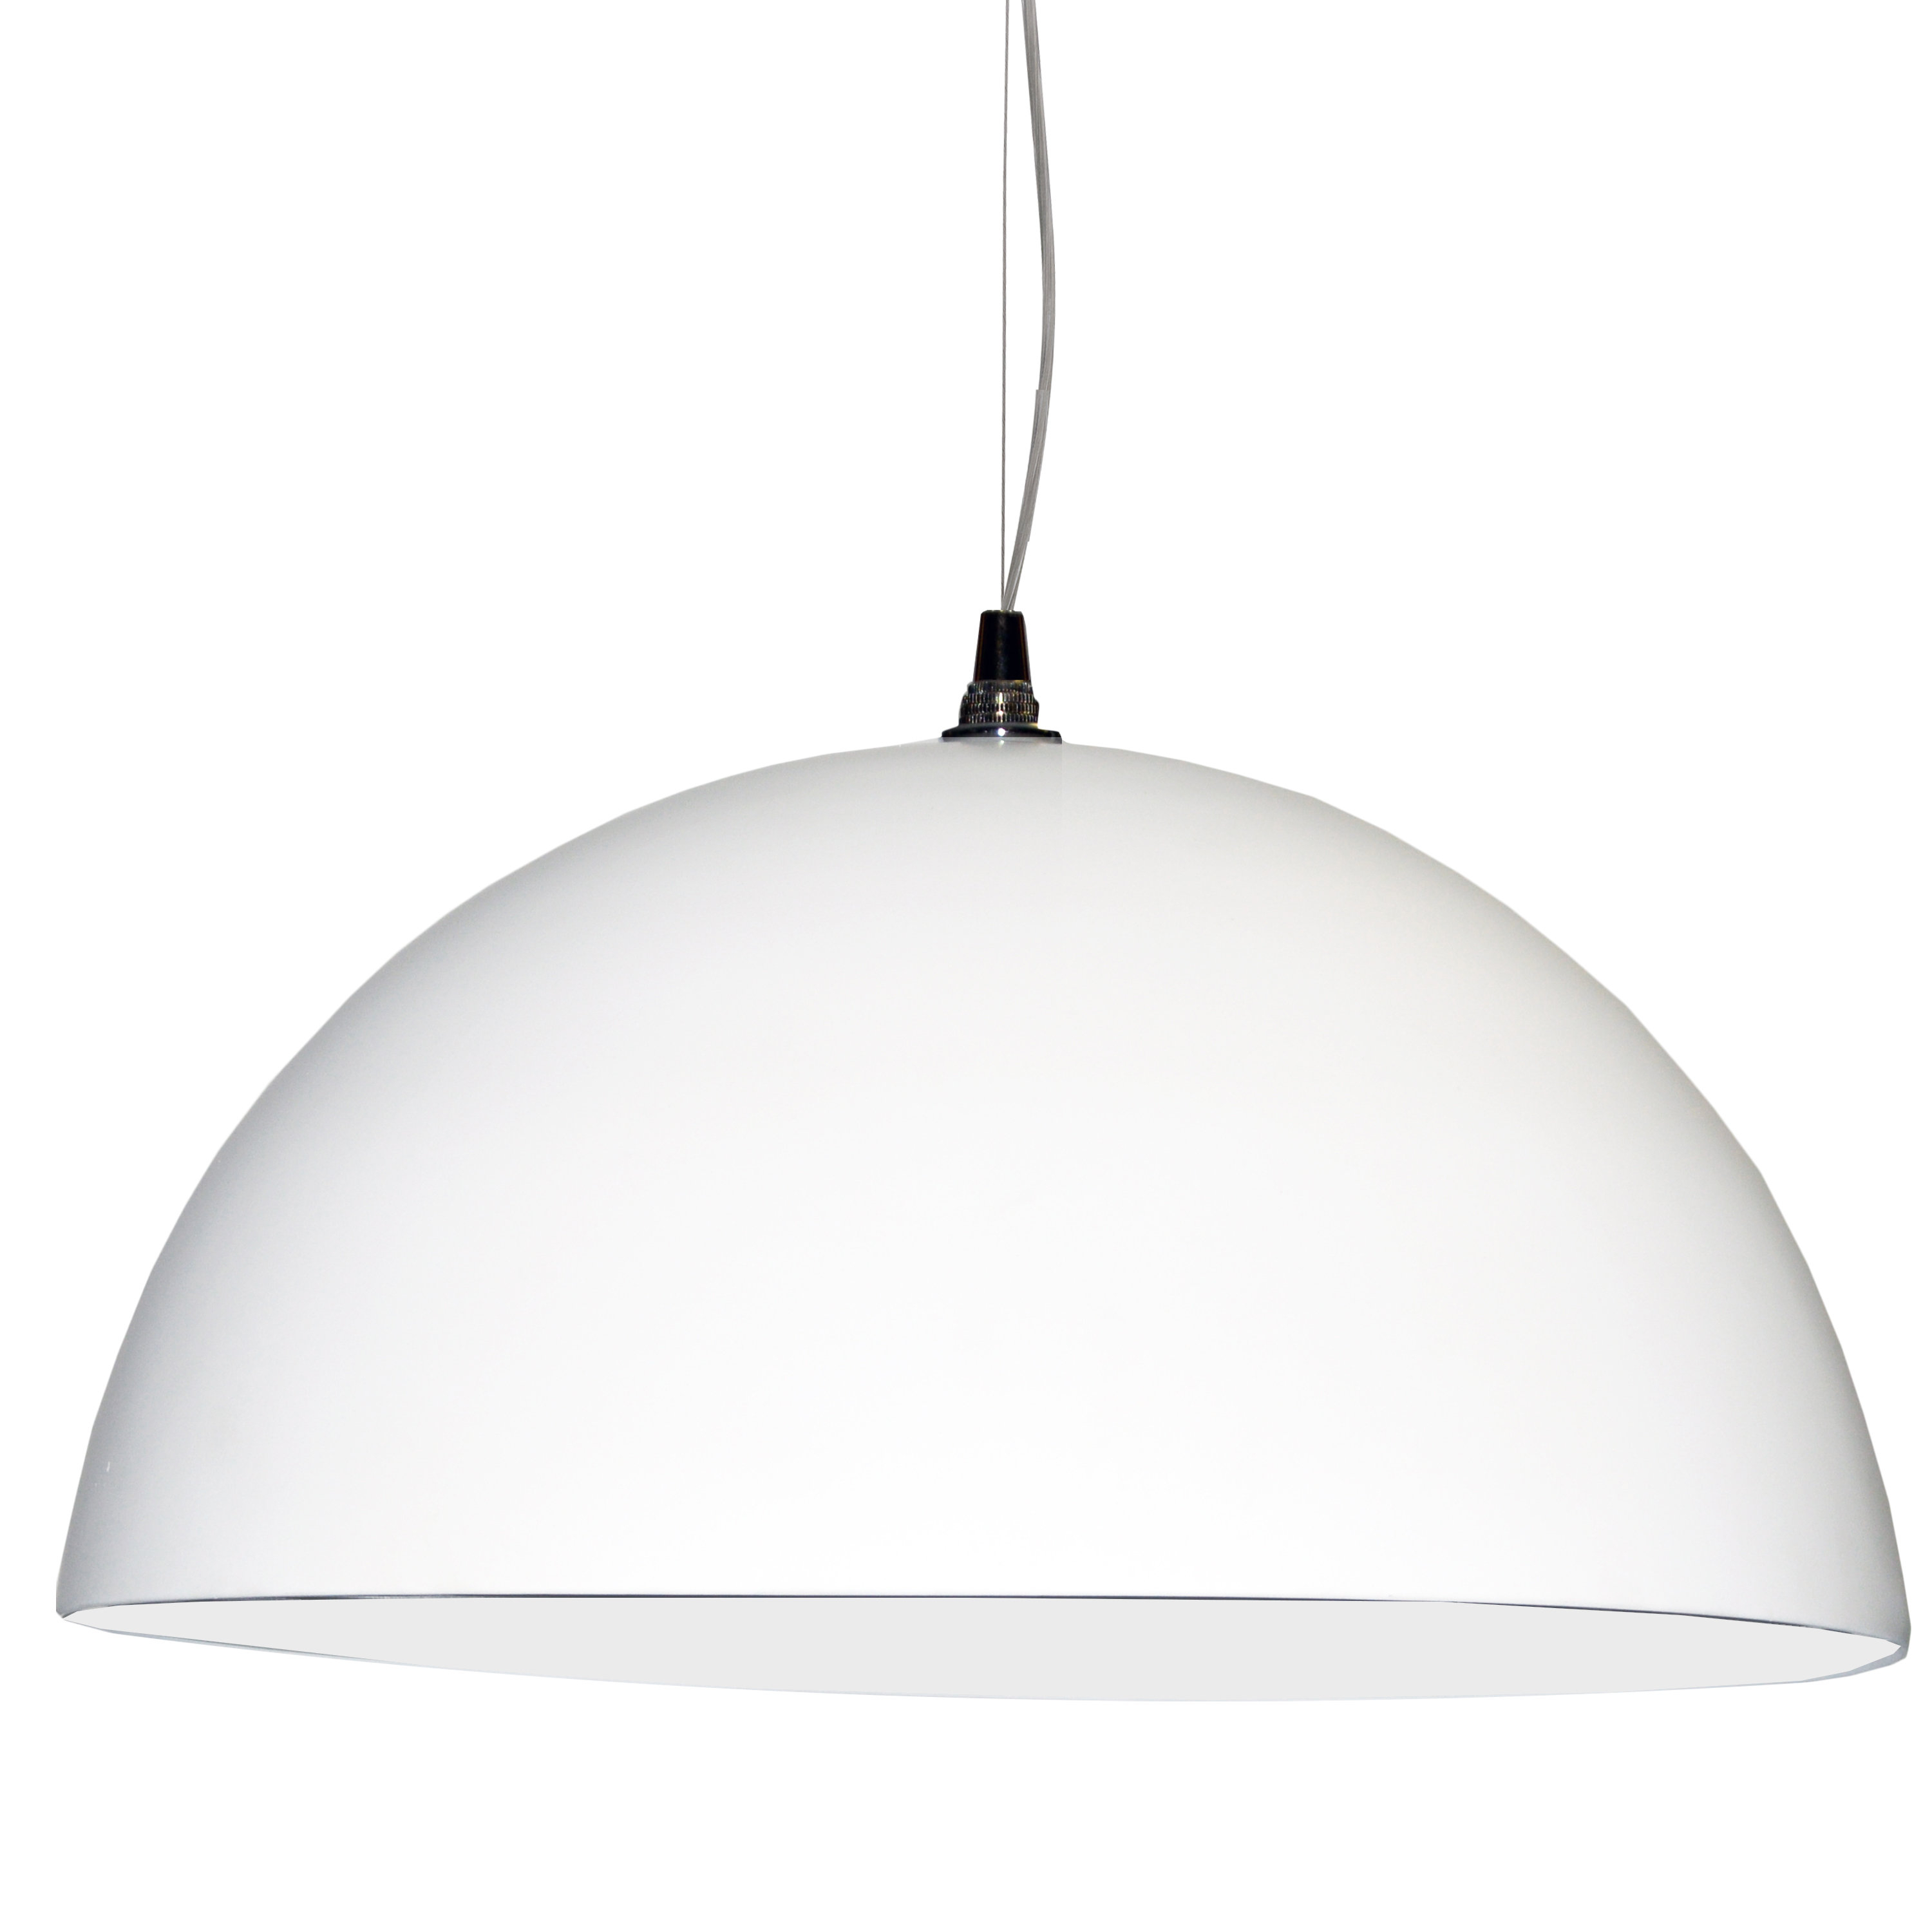 Ivy Bronx Oklee 3 Light Dome Pendant For Famous Ryker 1 Light Single Dome Pendants (View 20 of 25)